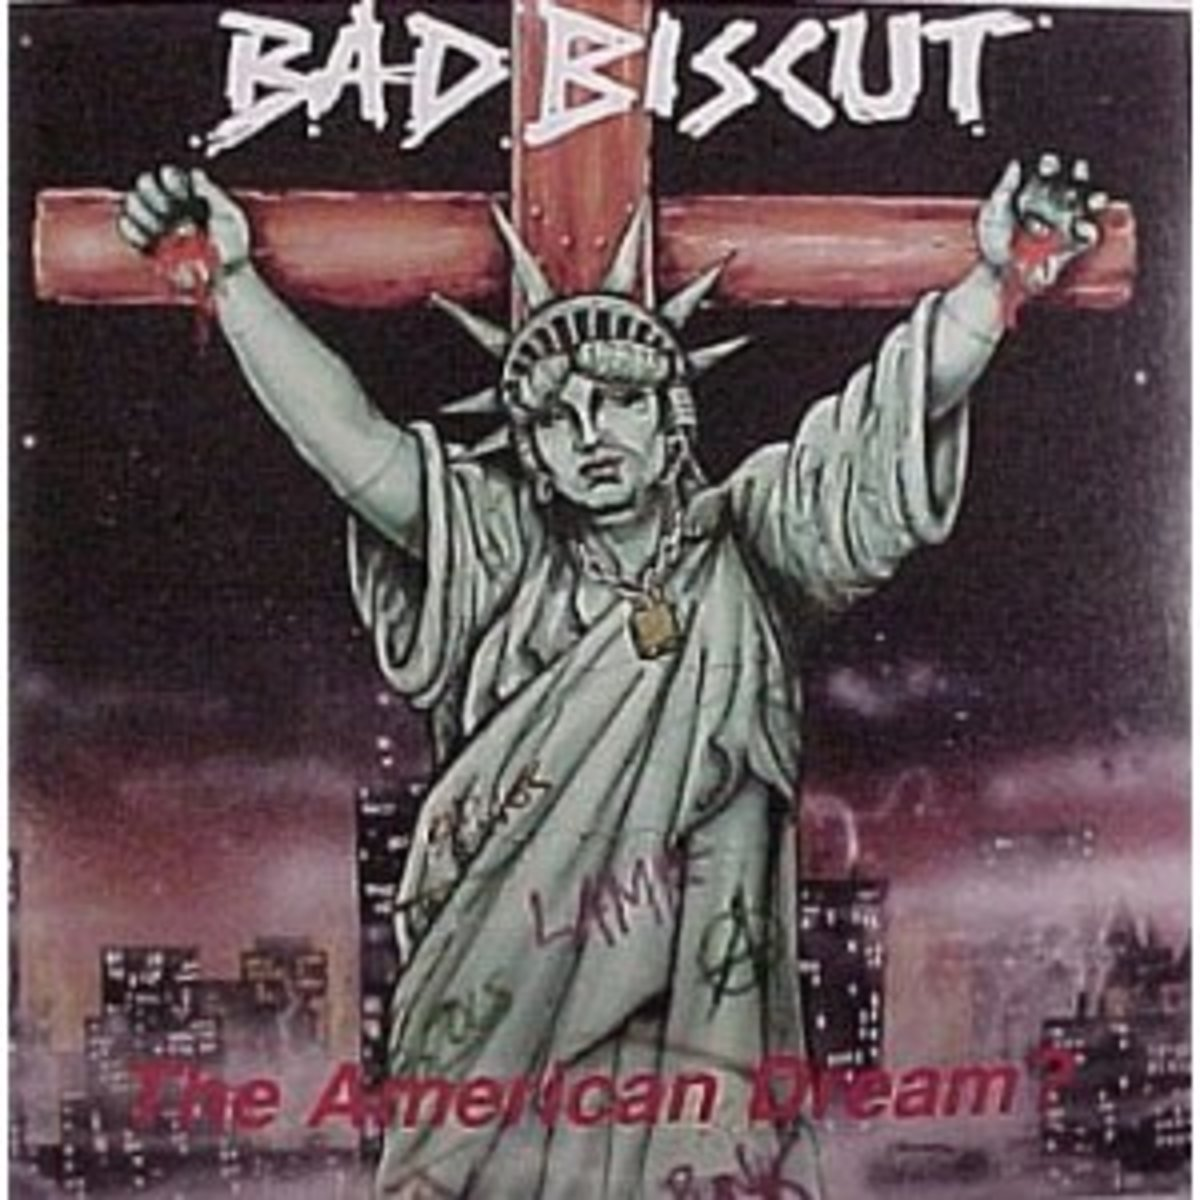 Forgotten Hard Rock Albums: Bad Biscut,